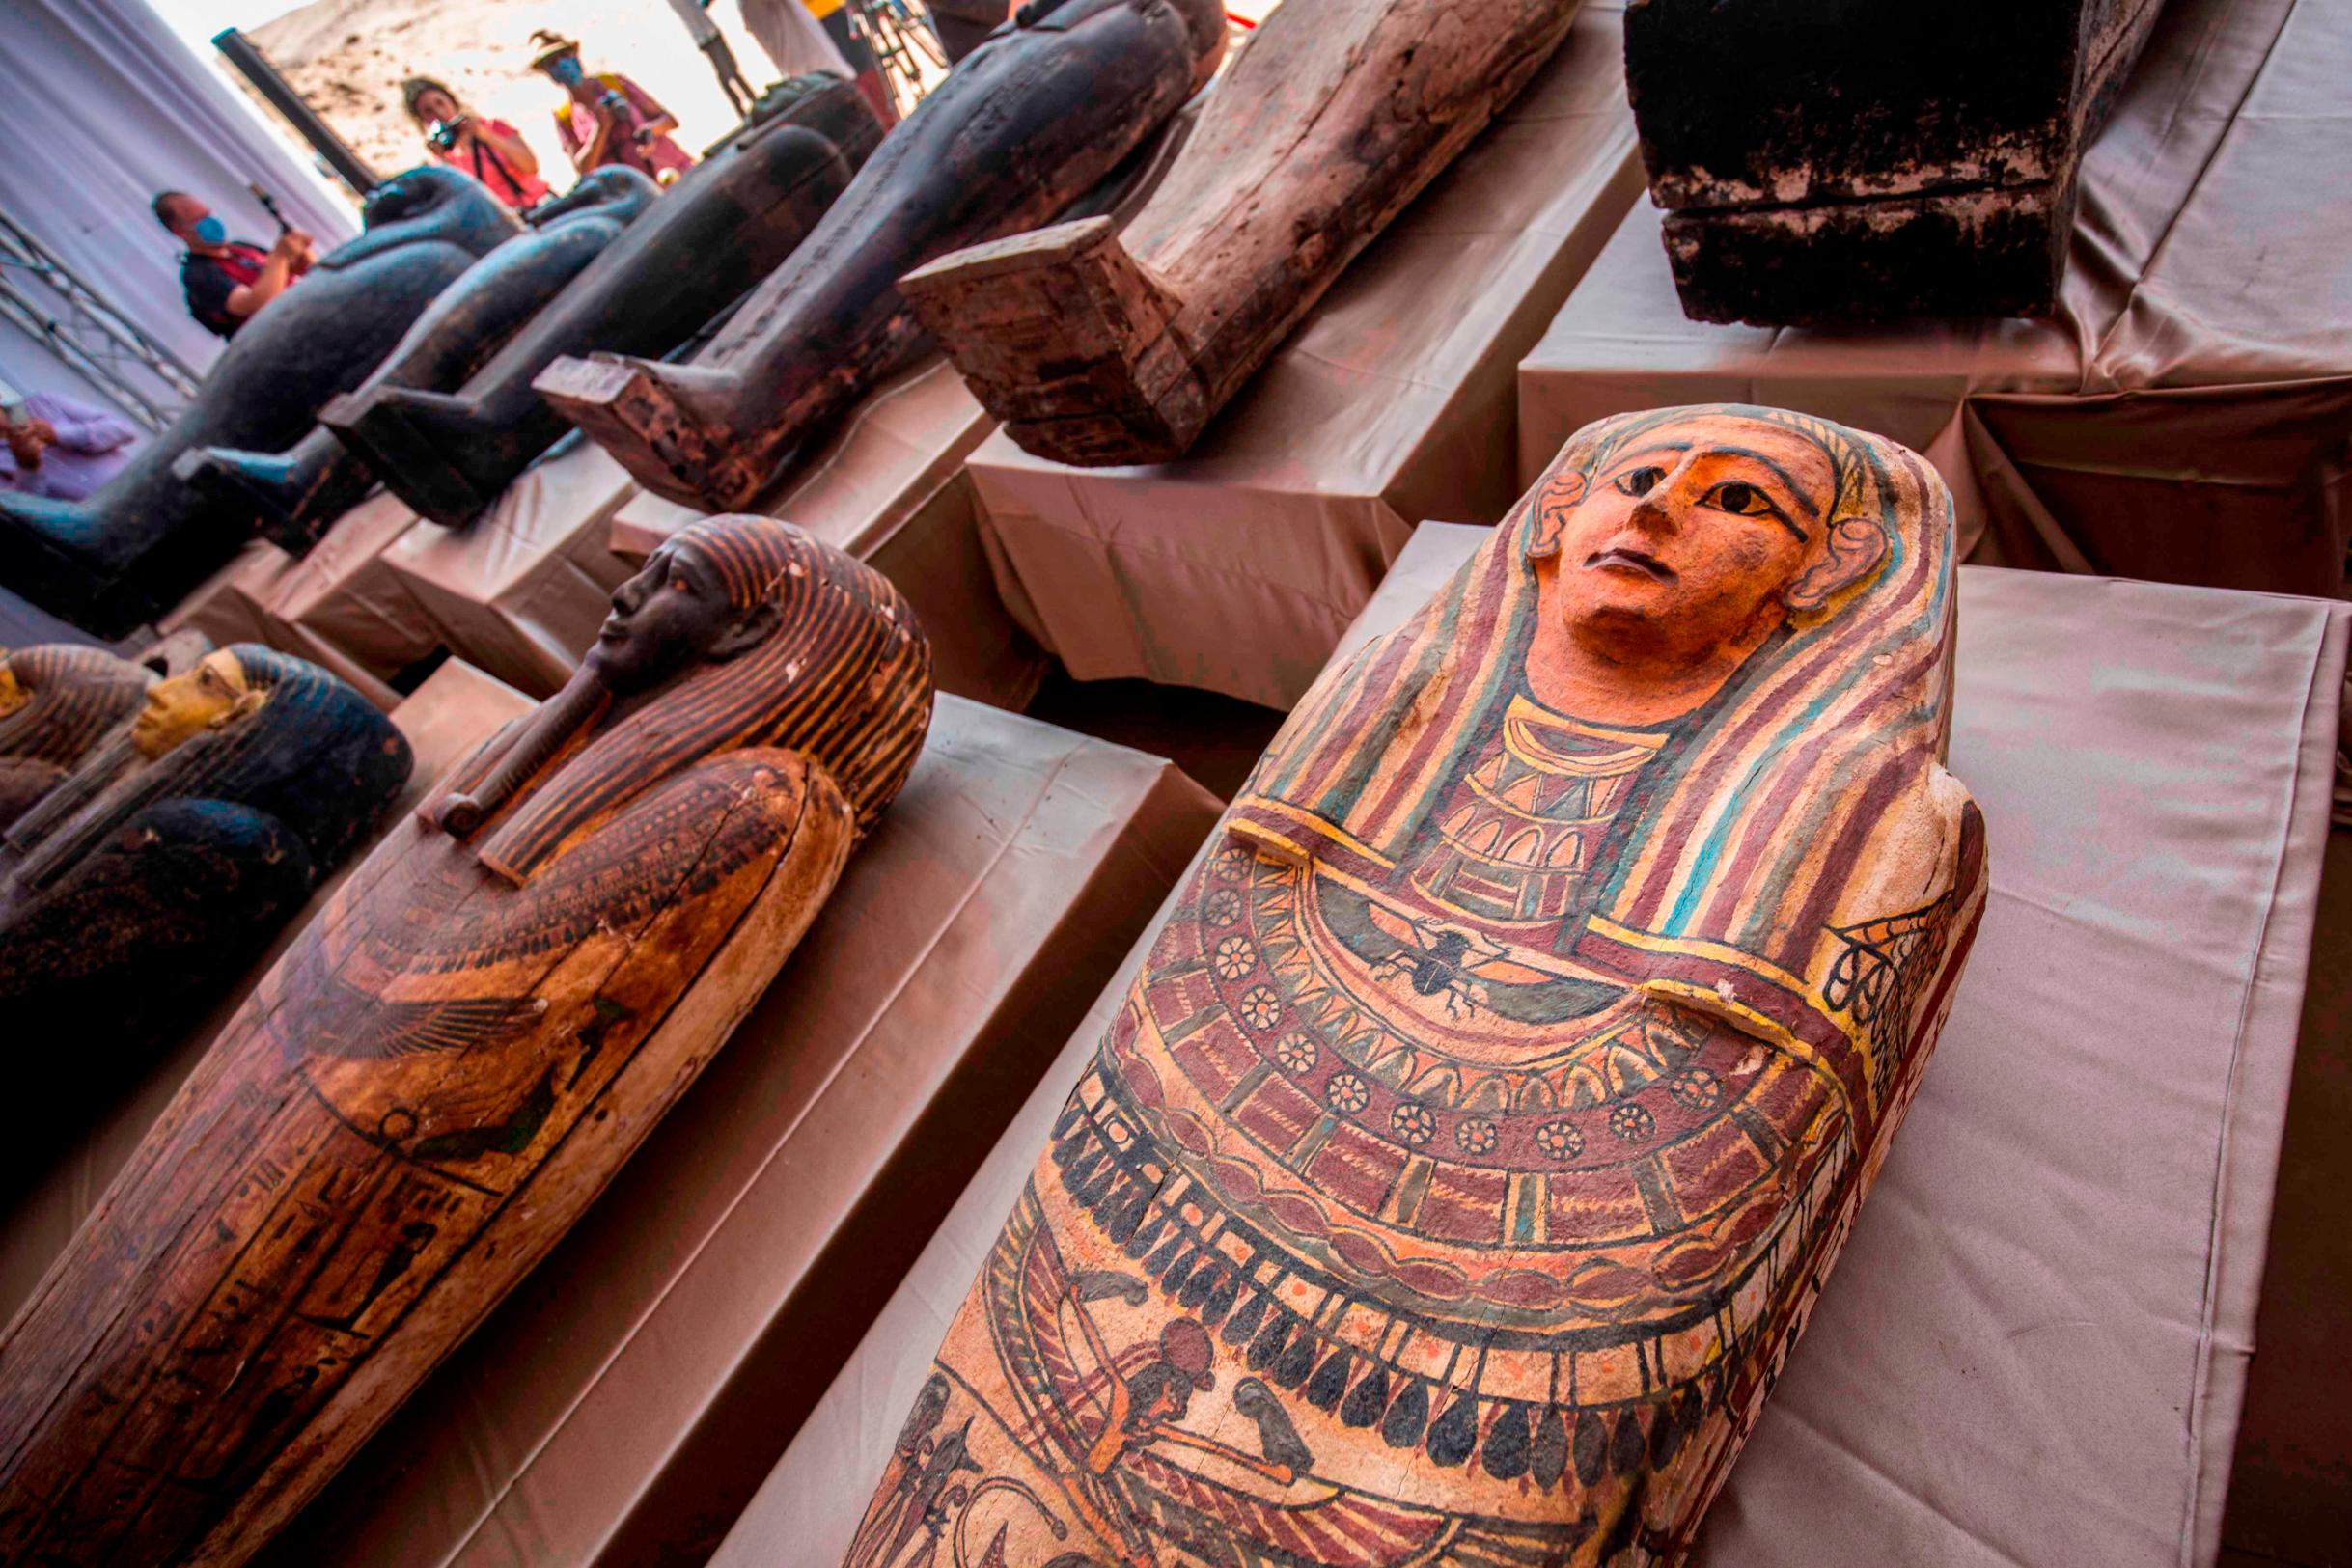 Archaeologists discovered ancient coffins containing mummies in Cairo